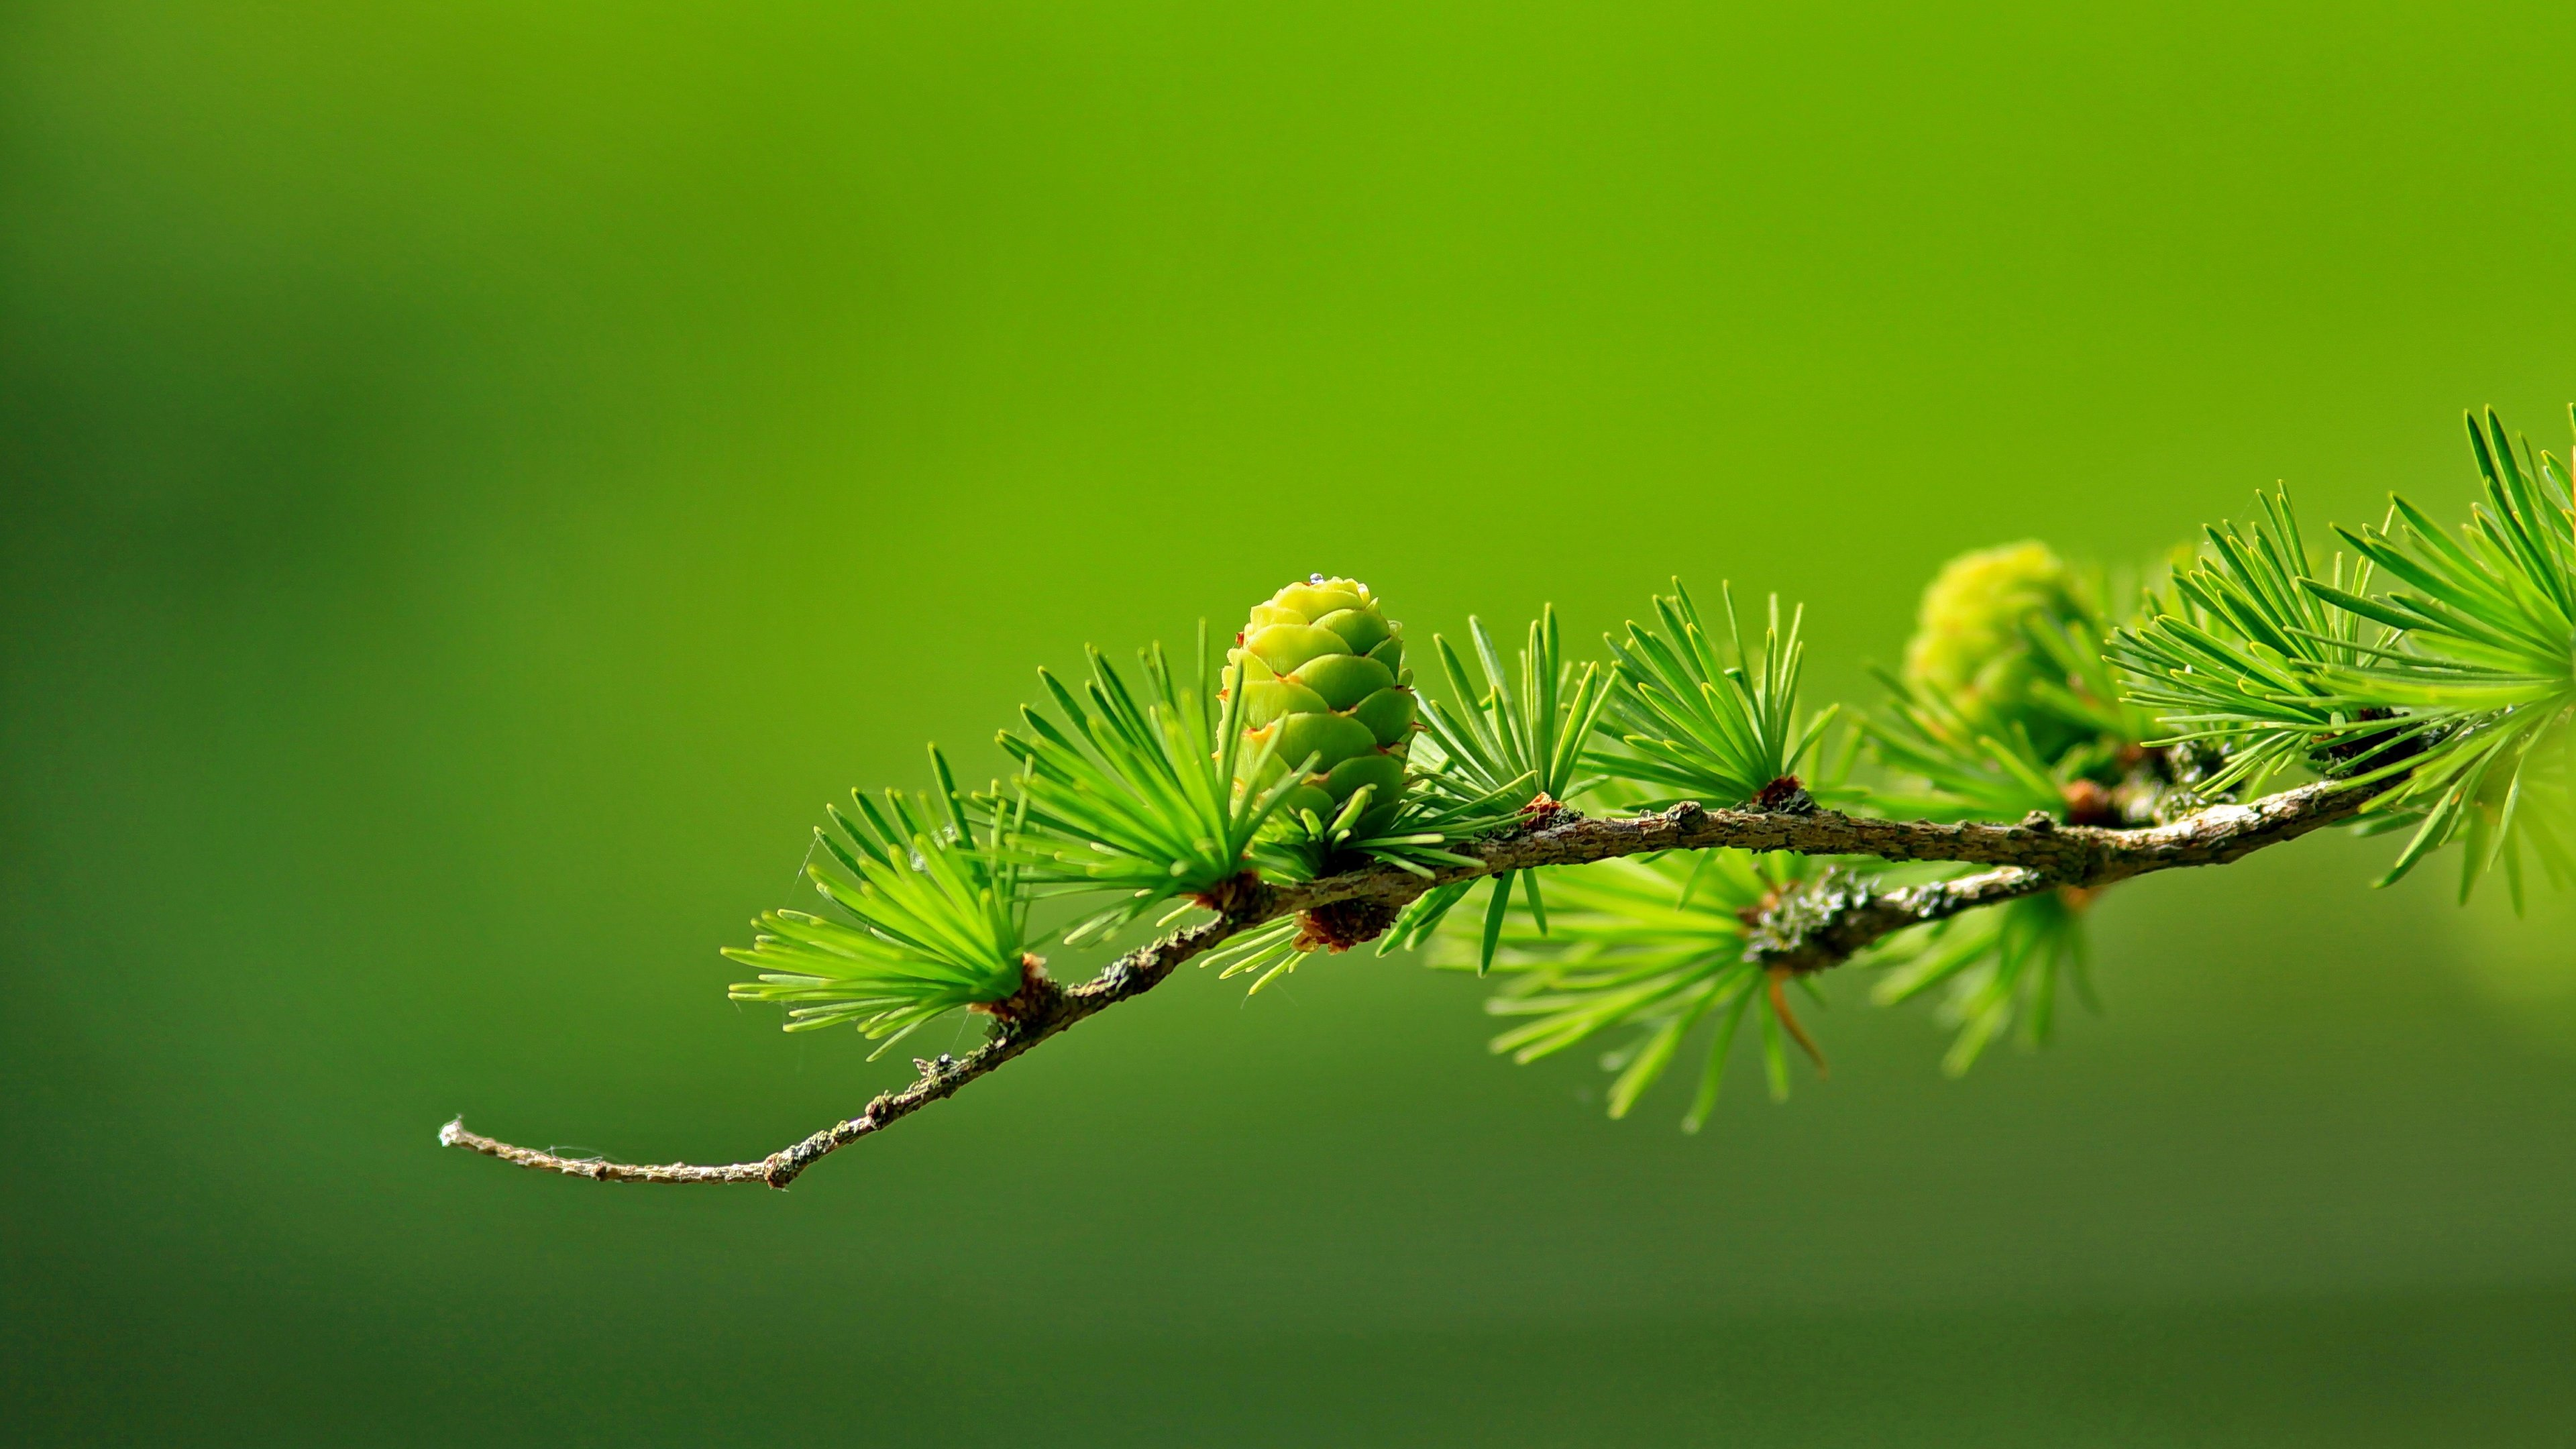 Conifer, tree, green, vegetation, plants, pine cones, green cones